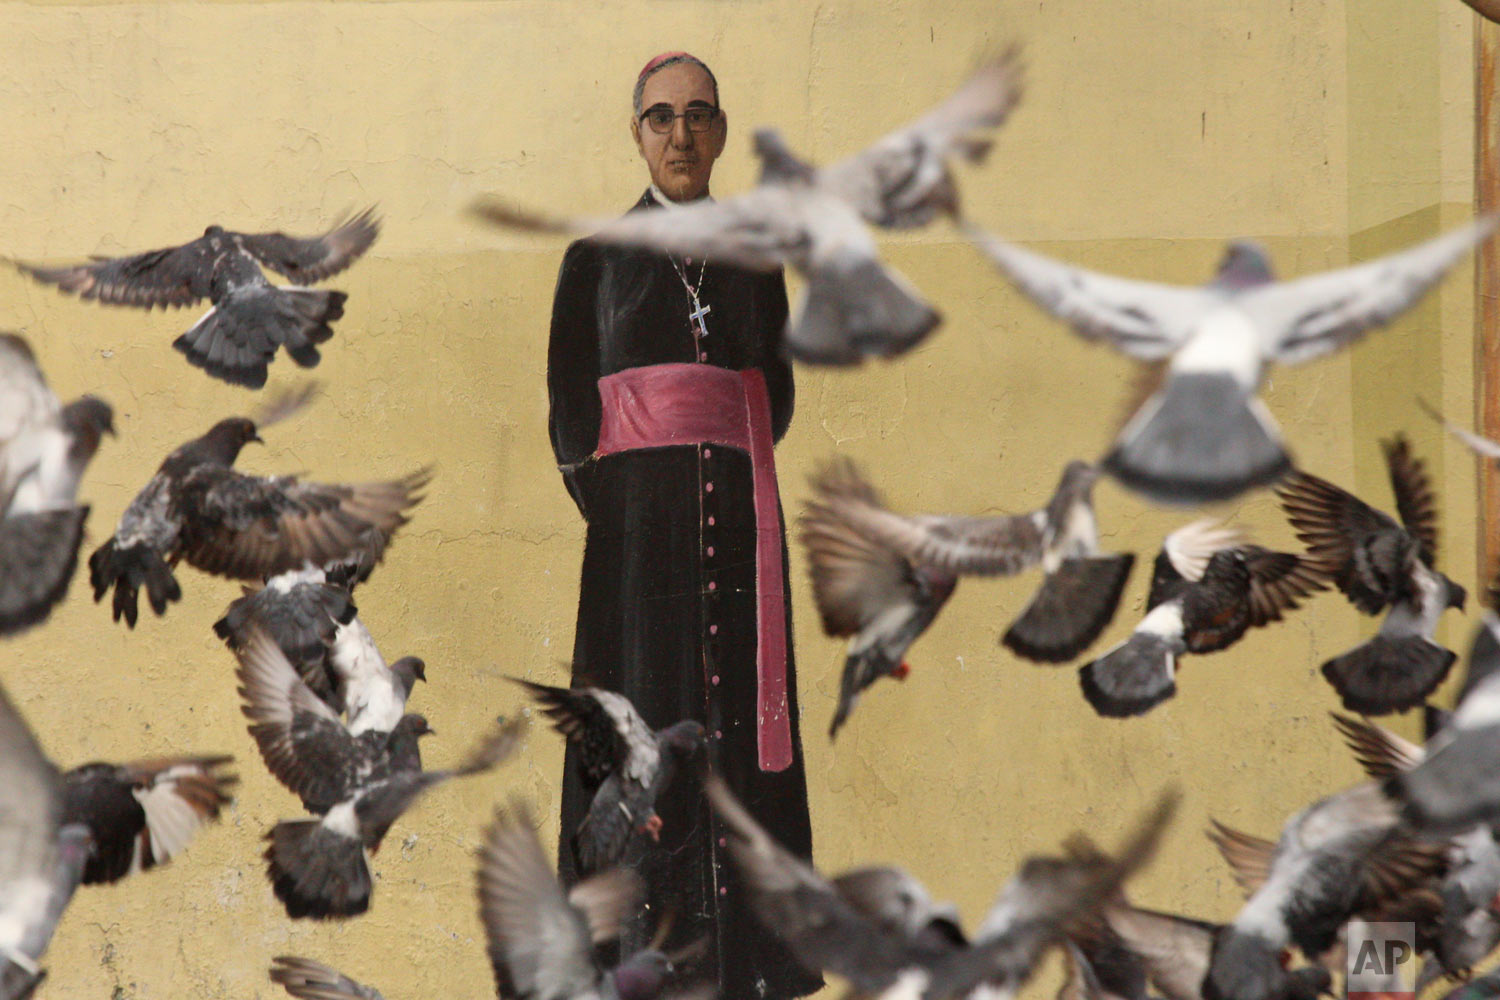 Pigeons fly in front of a mural of Archbishop Oscar Arnulfo Romero, on a wall of the Metropolitan Cathedral in San Salvador, El Salvador, Oct. 3. 2018. Romero will be canonized in Rome by Pope Francis on Sunday, Oct. 14th. Romero was assassinated in 1980 while celebrating Mass by a gunman hired by right-wing death squads. (AP Photo/Salvador Melendez)